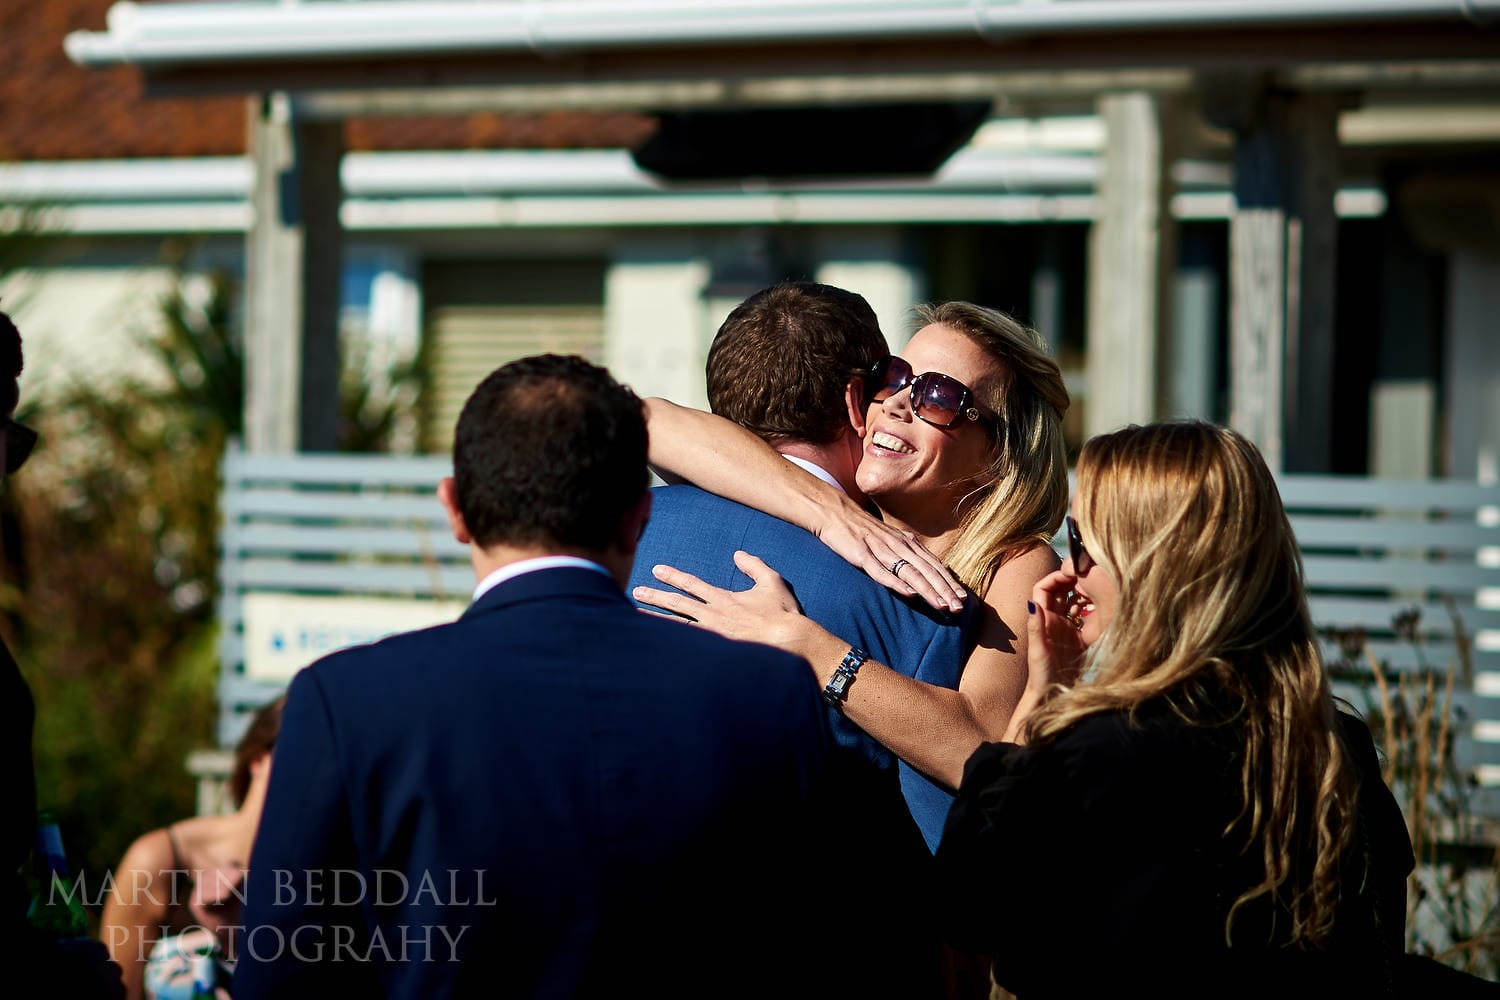 Hug for the groom from a guest